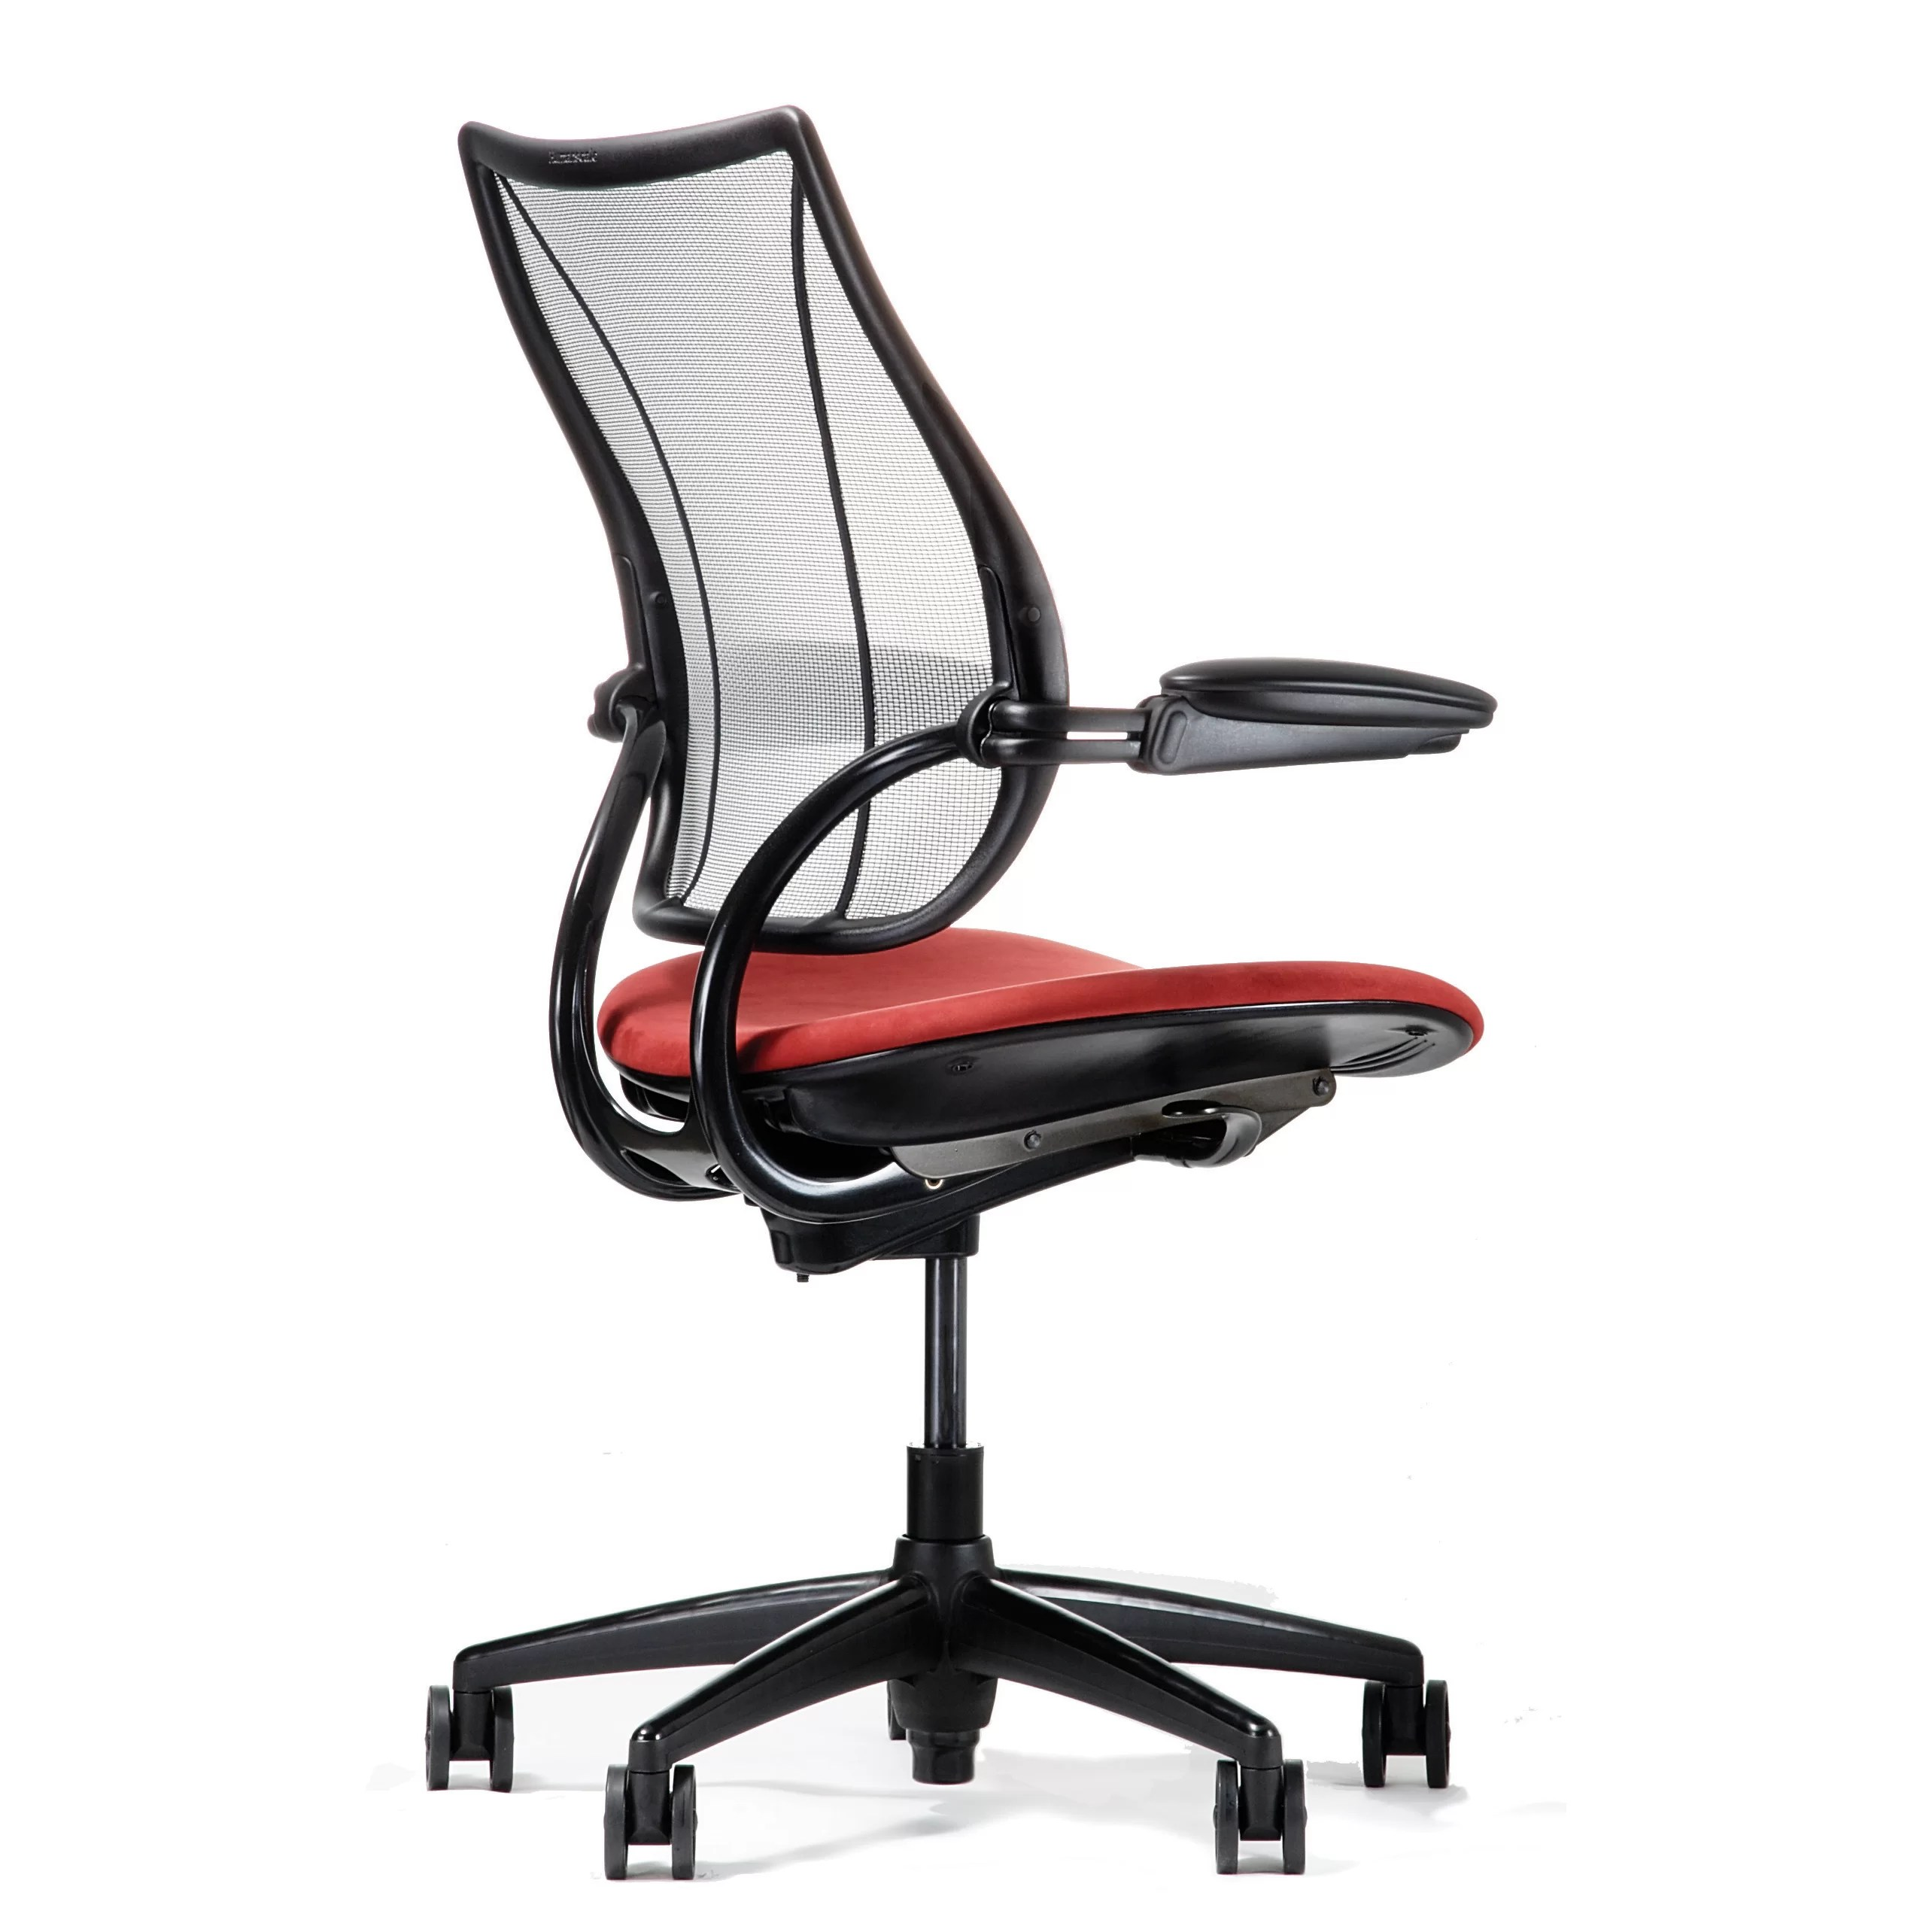 Humanscale Liberty Chair Humanscale Mid Back Liberty Office Chair With Arms